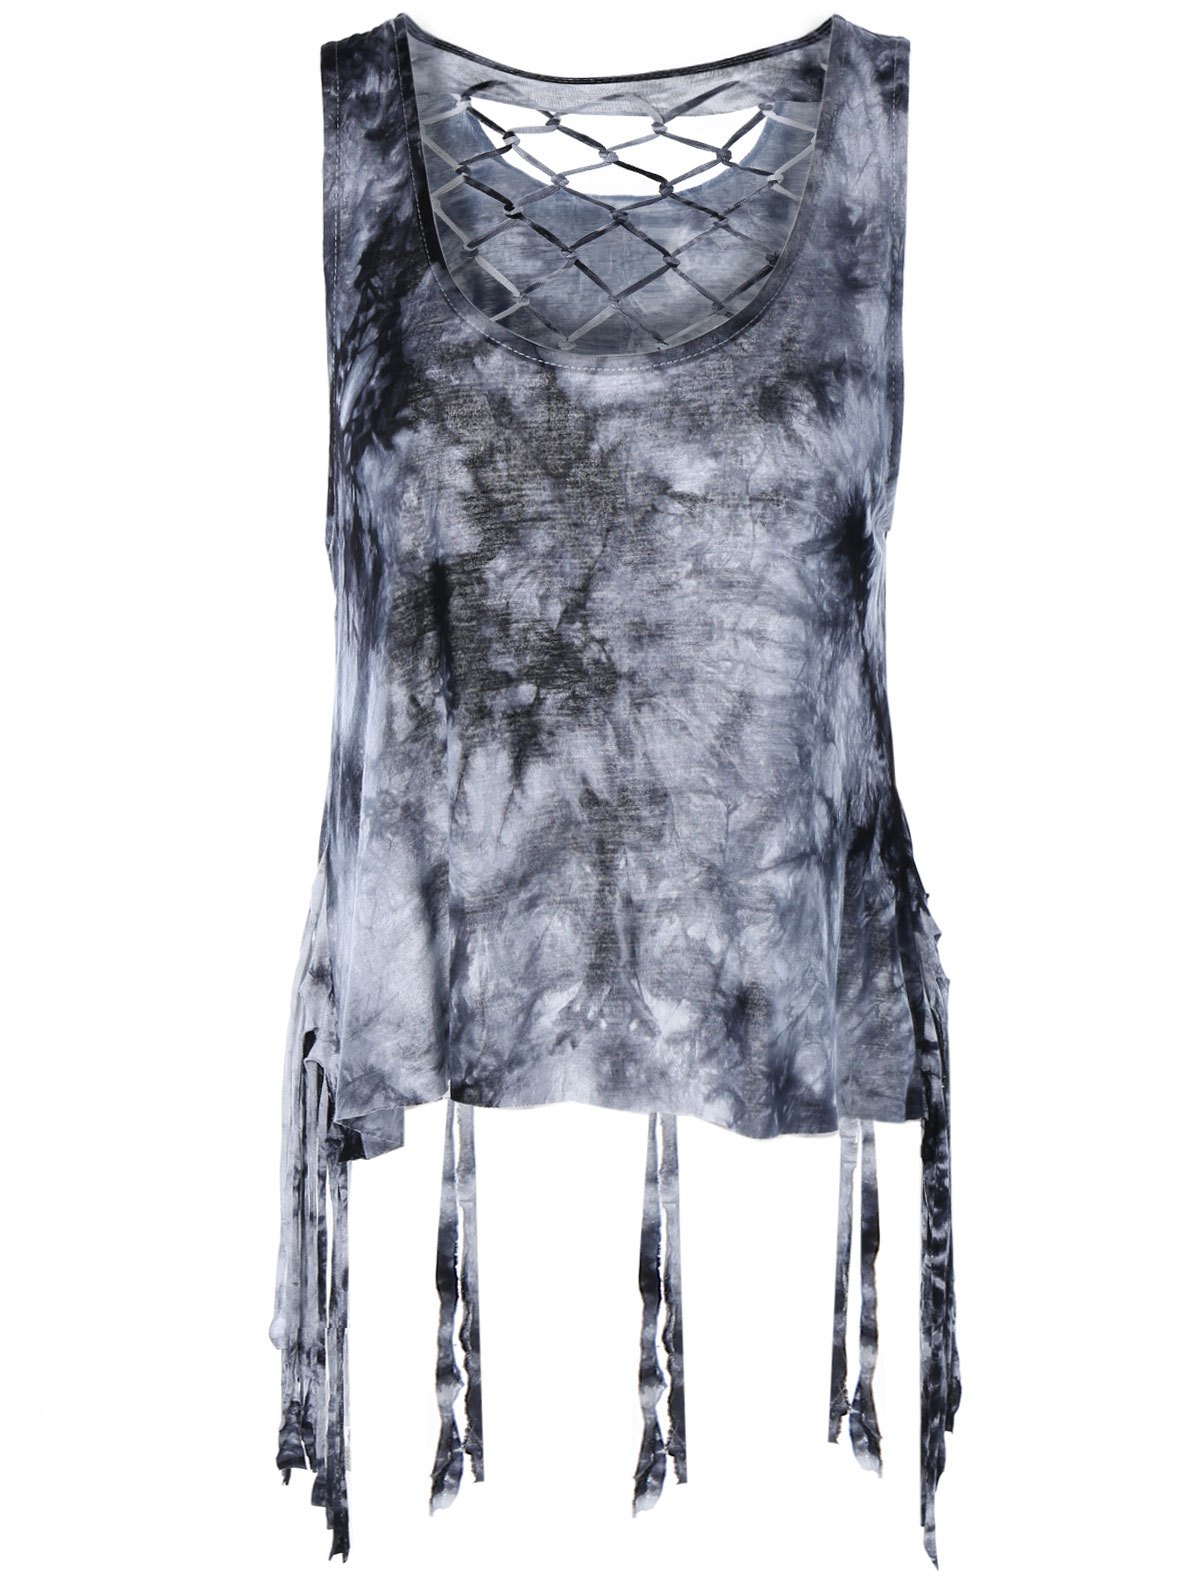 Fashionable Women's Scoop Neck Weave Fringe Tank Top - GRAY